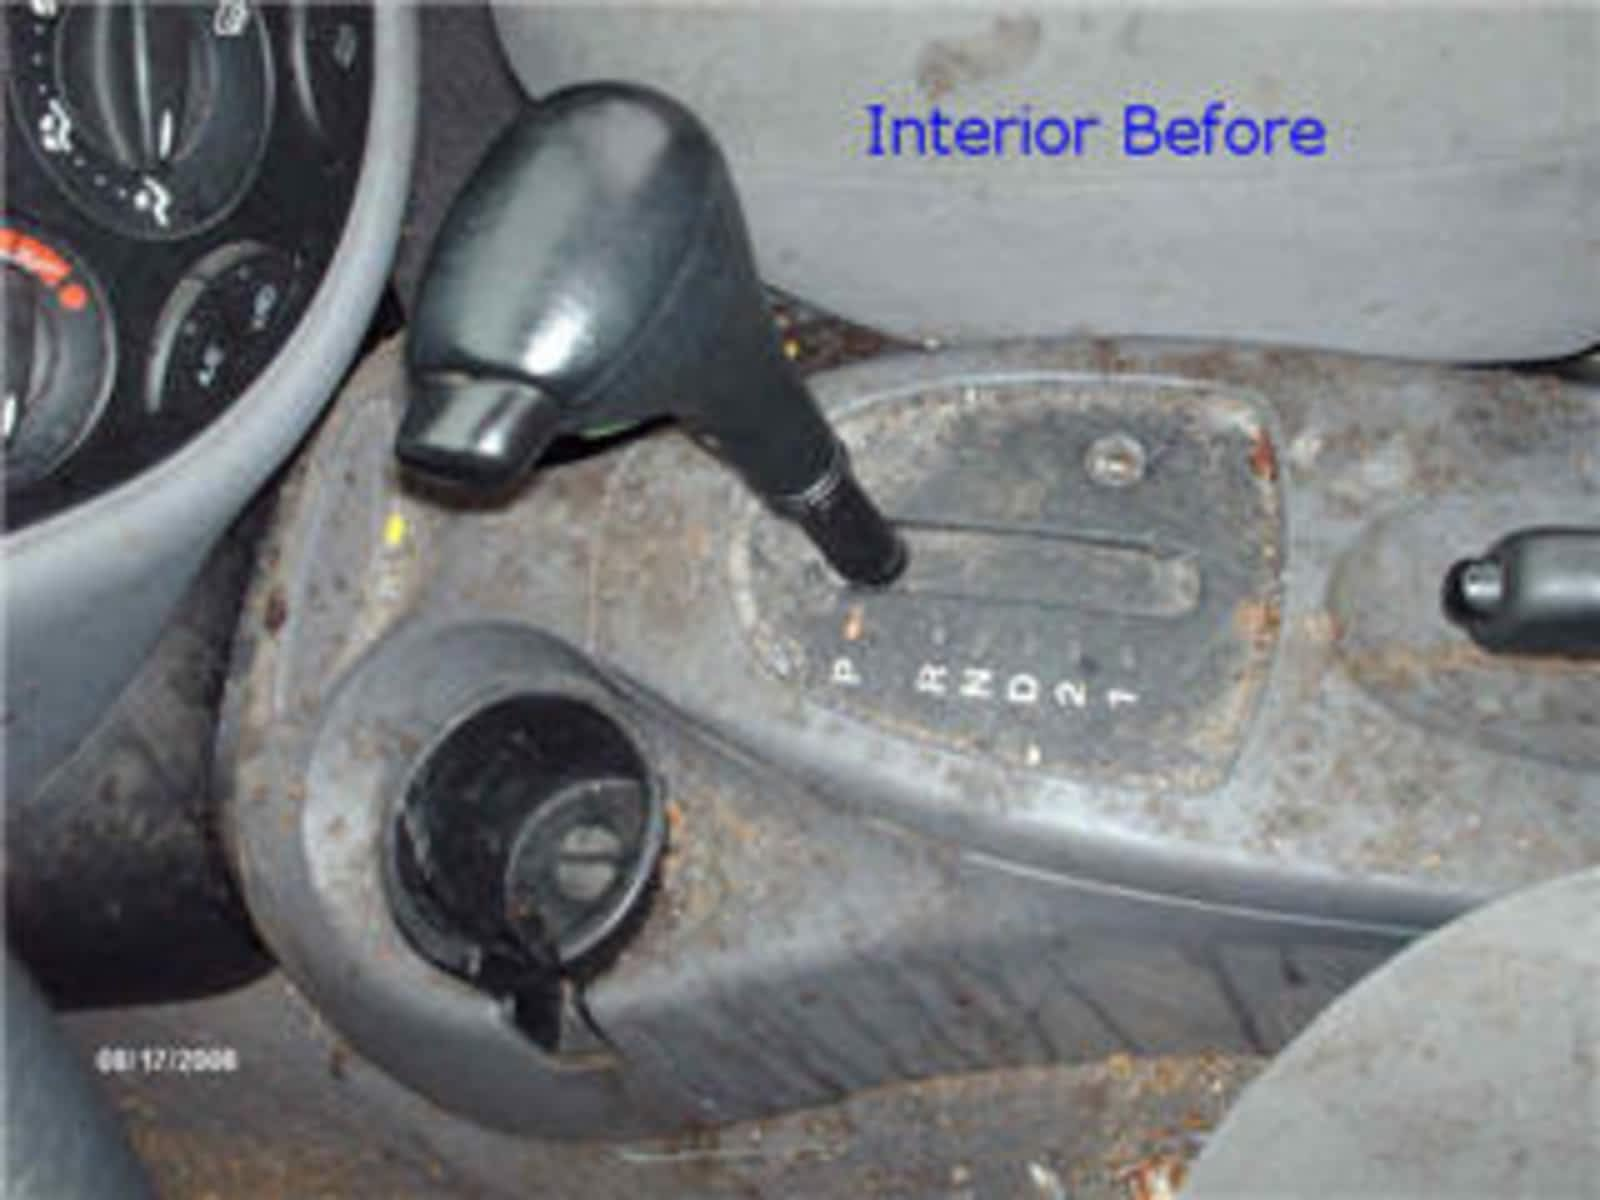 inside stock man interior vacuuming process automobile detailing image photography closeup seat auto photo of car a